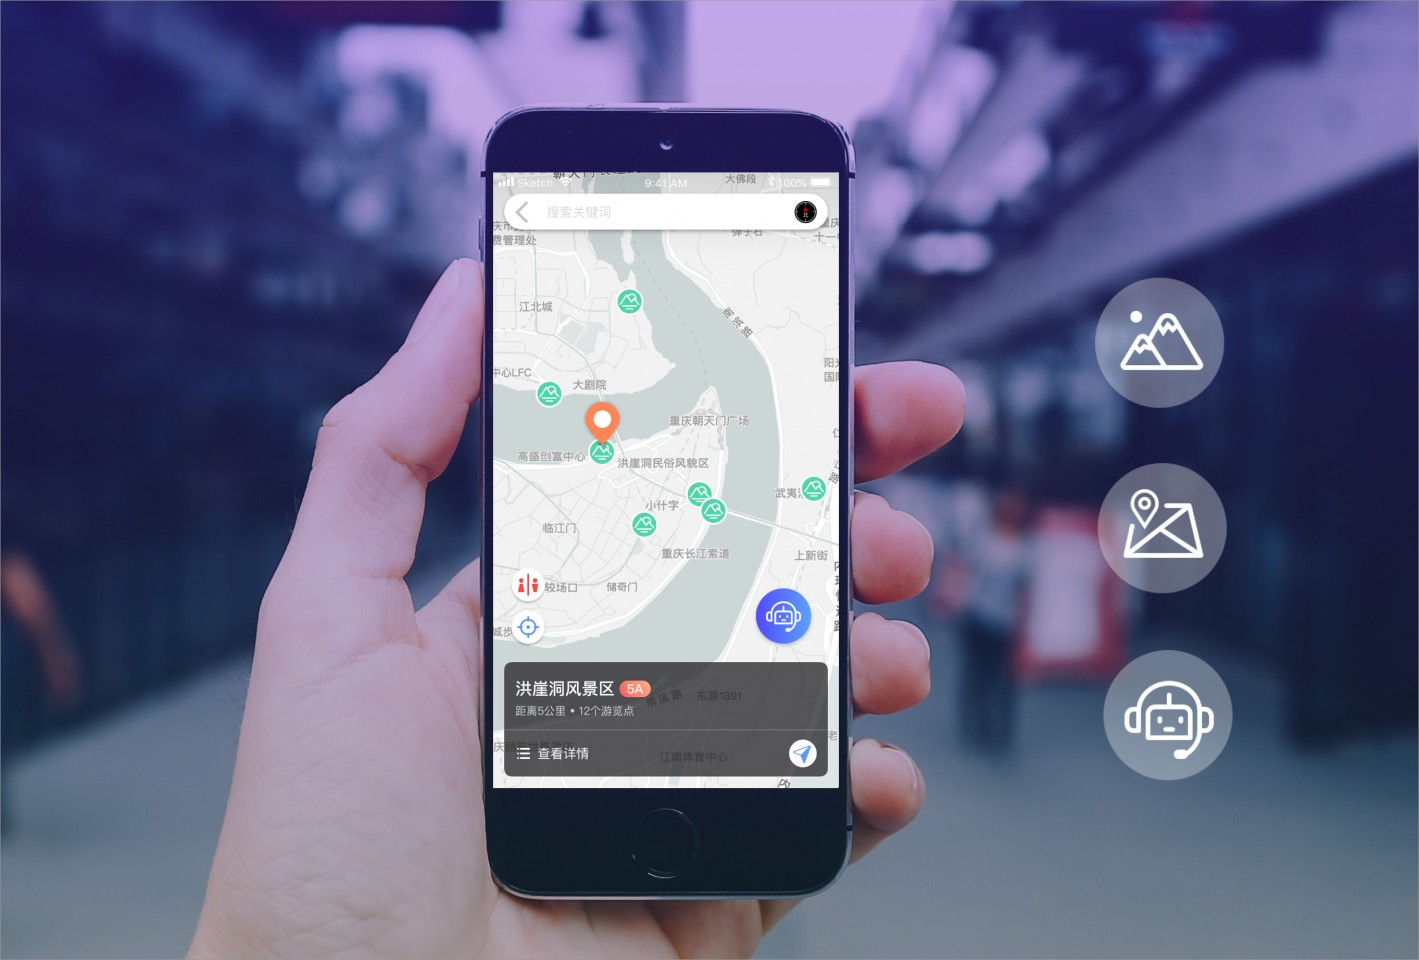 The Ai Chongqing (爱重庆) tourism platform app created by Fooyo, a smart tourism solution provider based in Singapore, for the Chongqing Tourism Investment Group. (Fooyo)